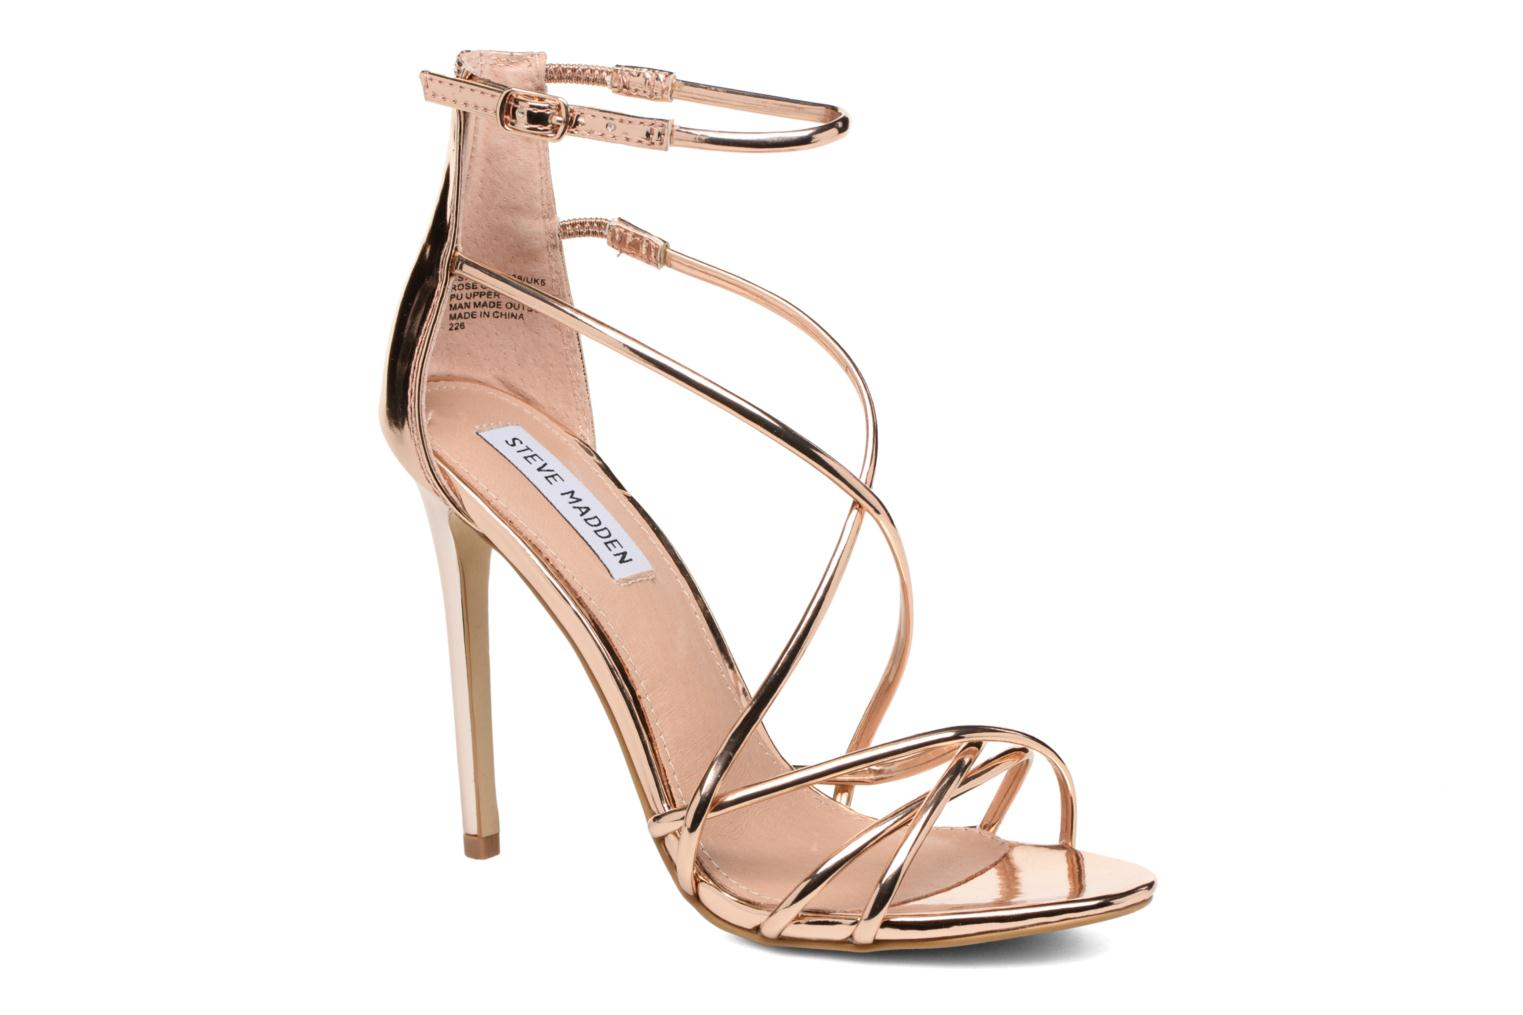 Satire Sandal 15002 Rose Gold PU